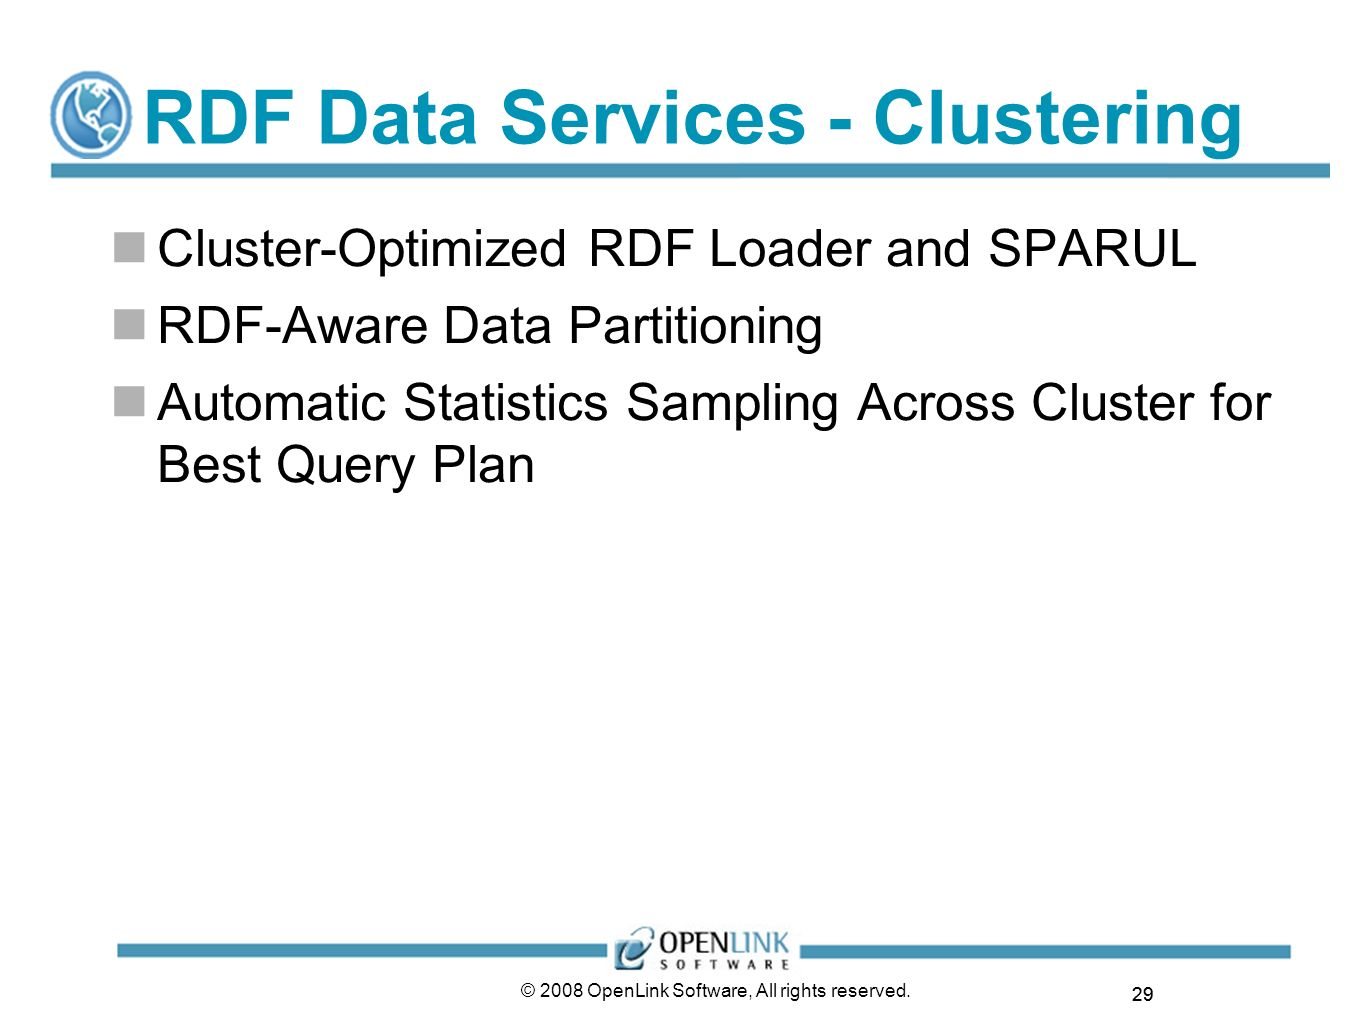 29 © 2008 OpenLink Software, All rights reserved. RDF Data Services - Clustering Cluster-Optimized RDF Loader and SPARUL RDF-Aware Data Partitioning A